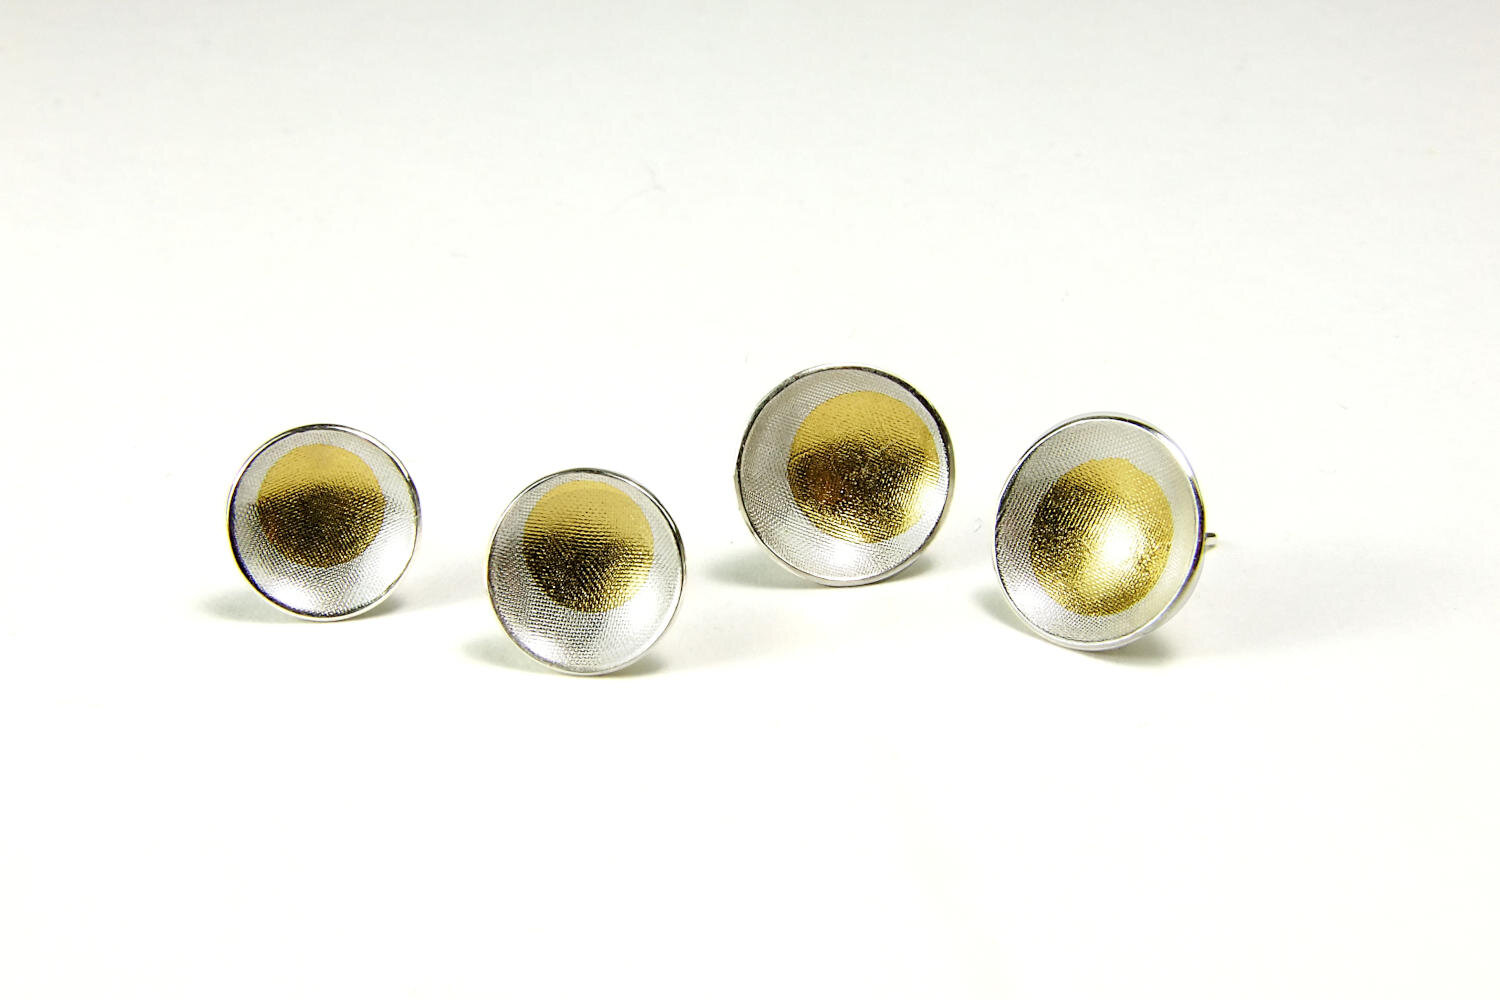 round-domed-silver-gold-earstuds-hbm94ab-7793.JPG